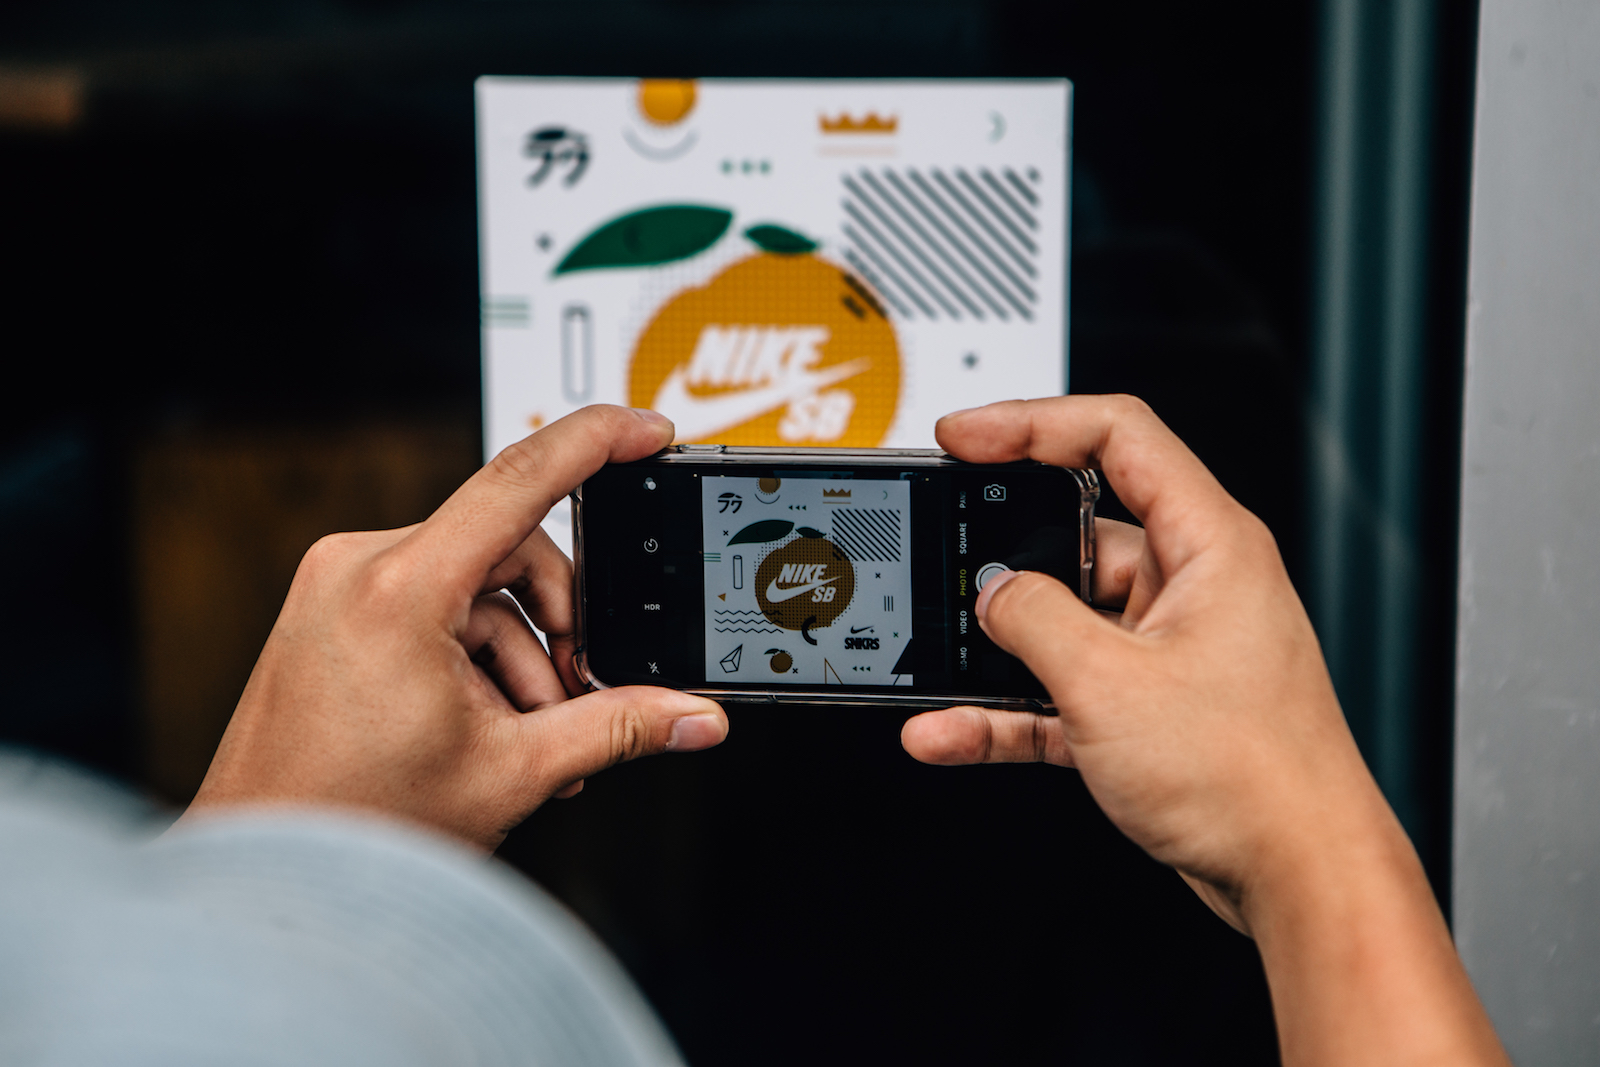 For Nike, augmented reality is the perfect way to sell hyped